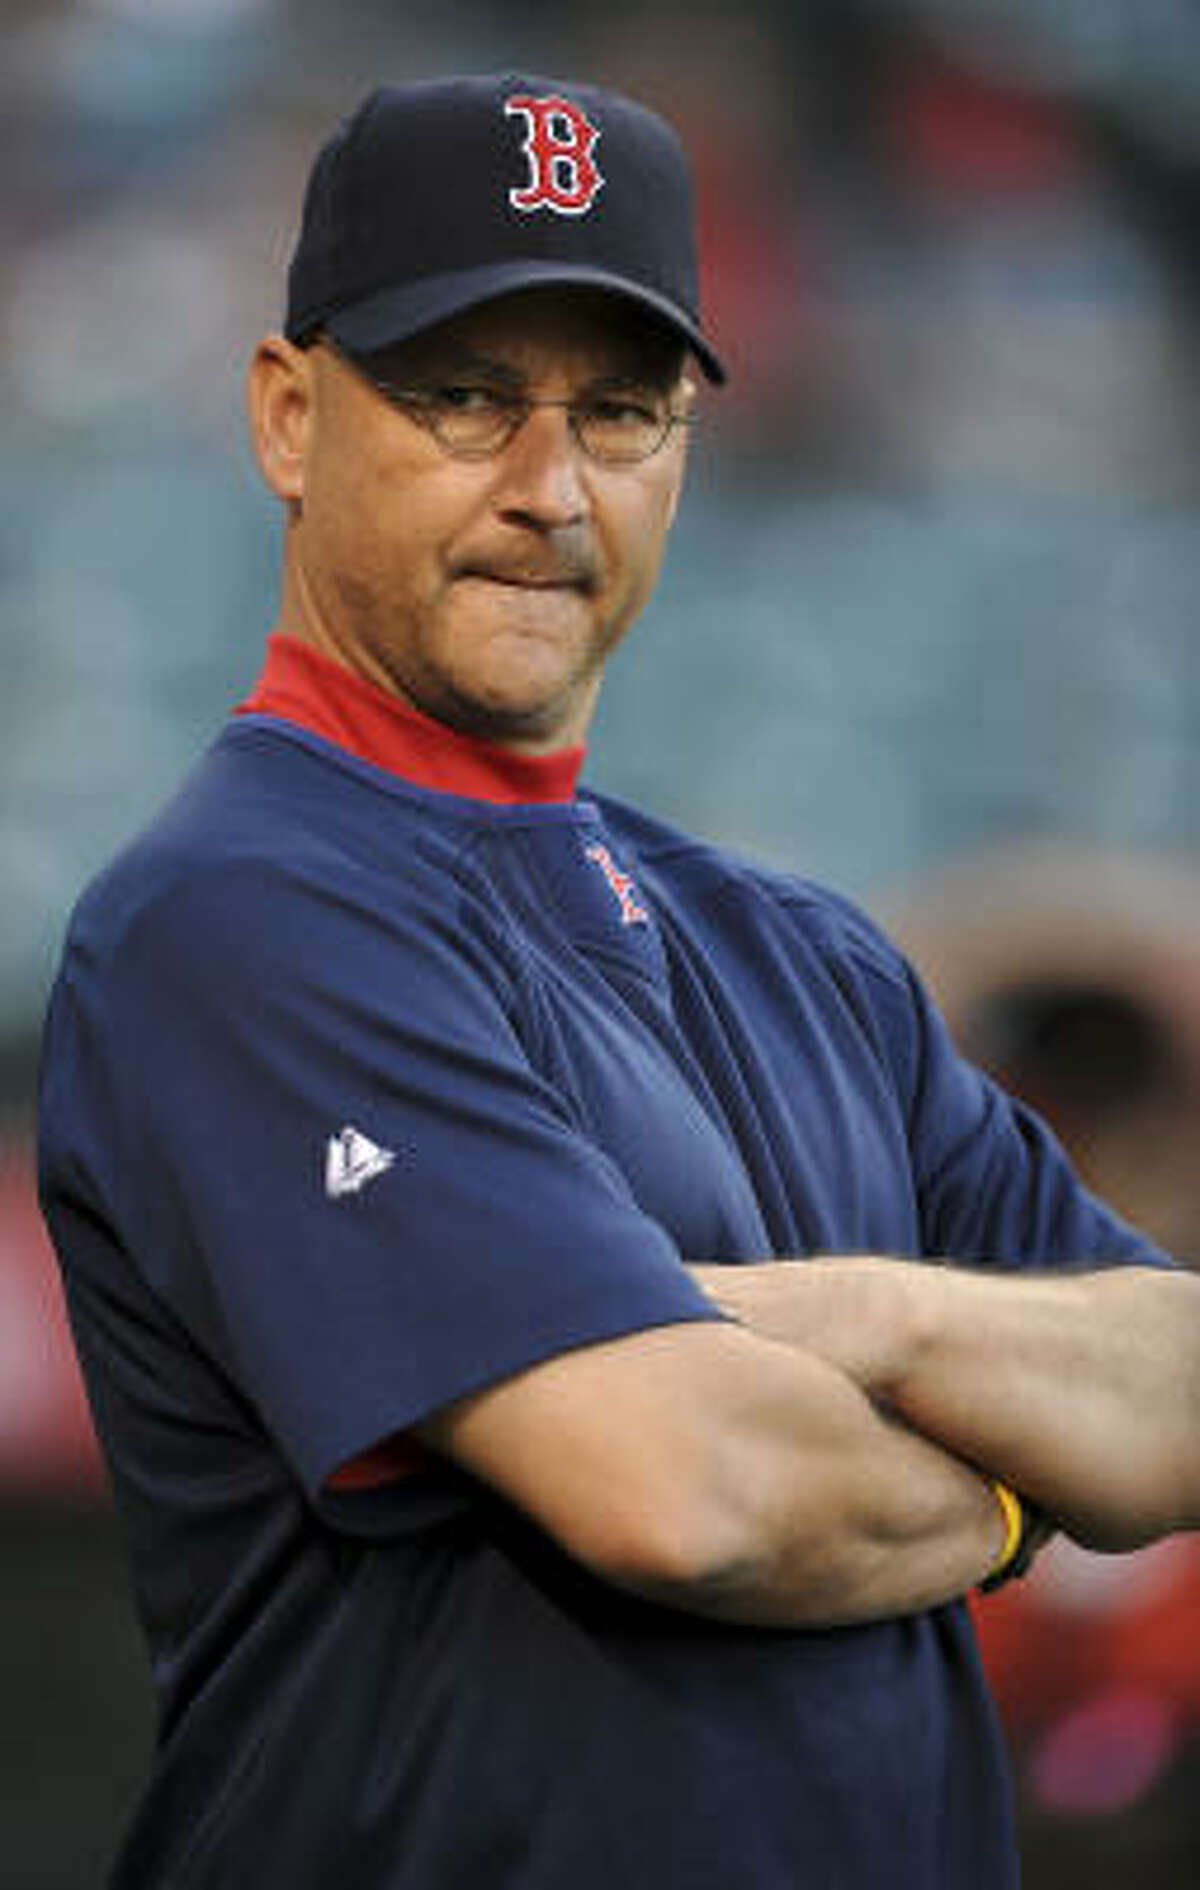 Terry Francona has known Brad Mills since the two were college teammates at Arizona in the late 1970s.